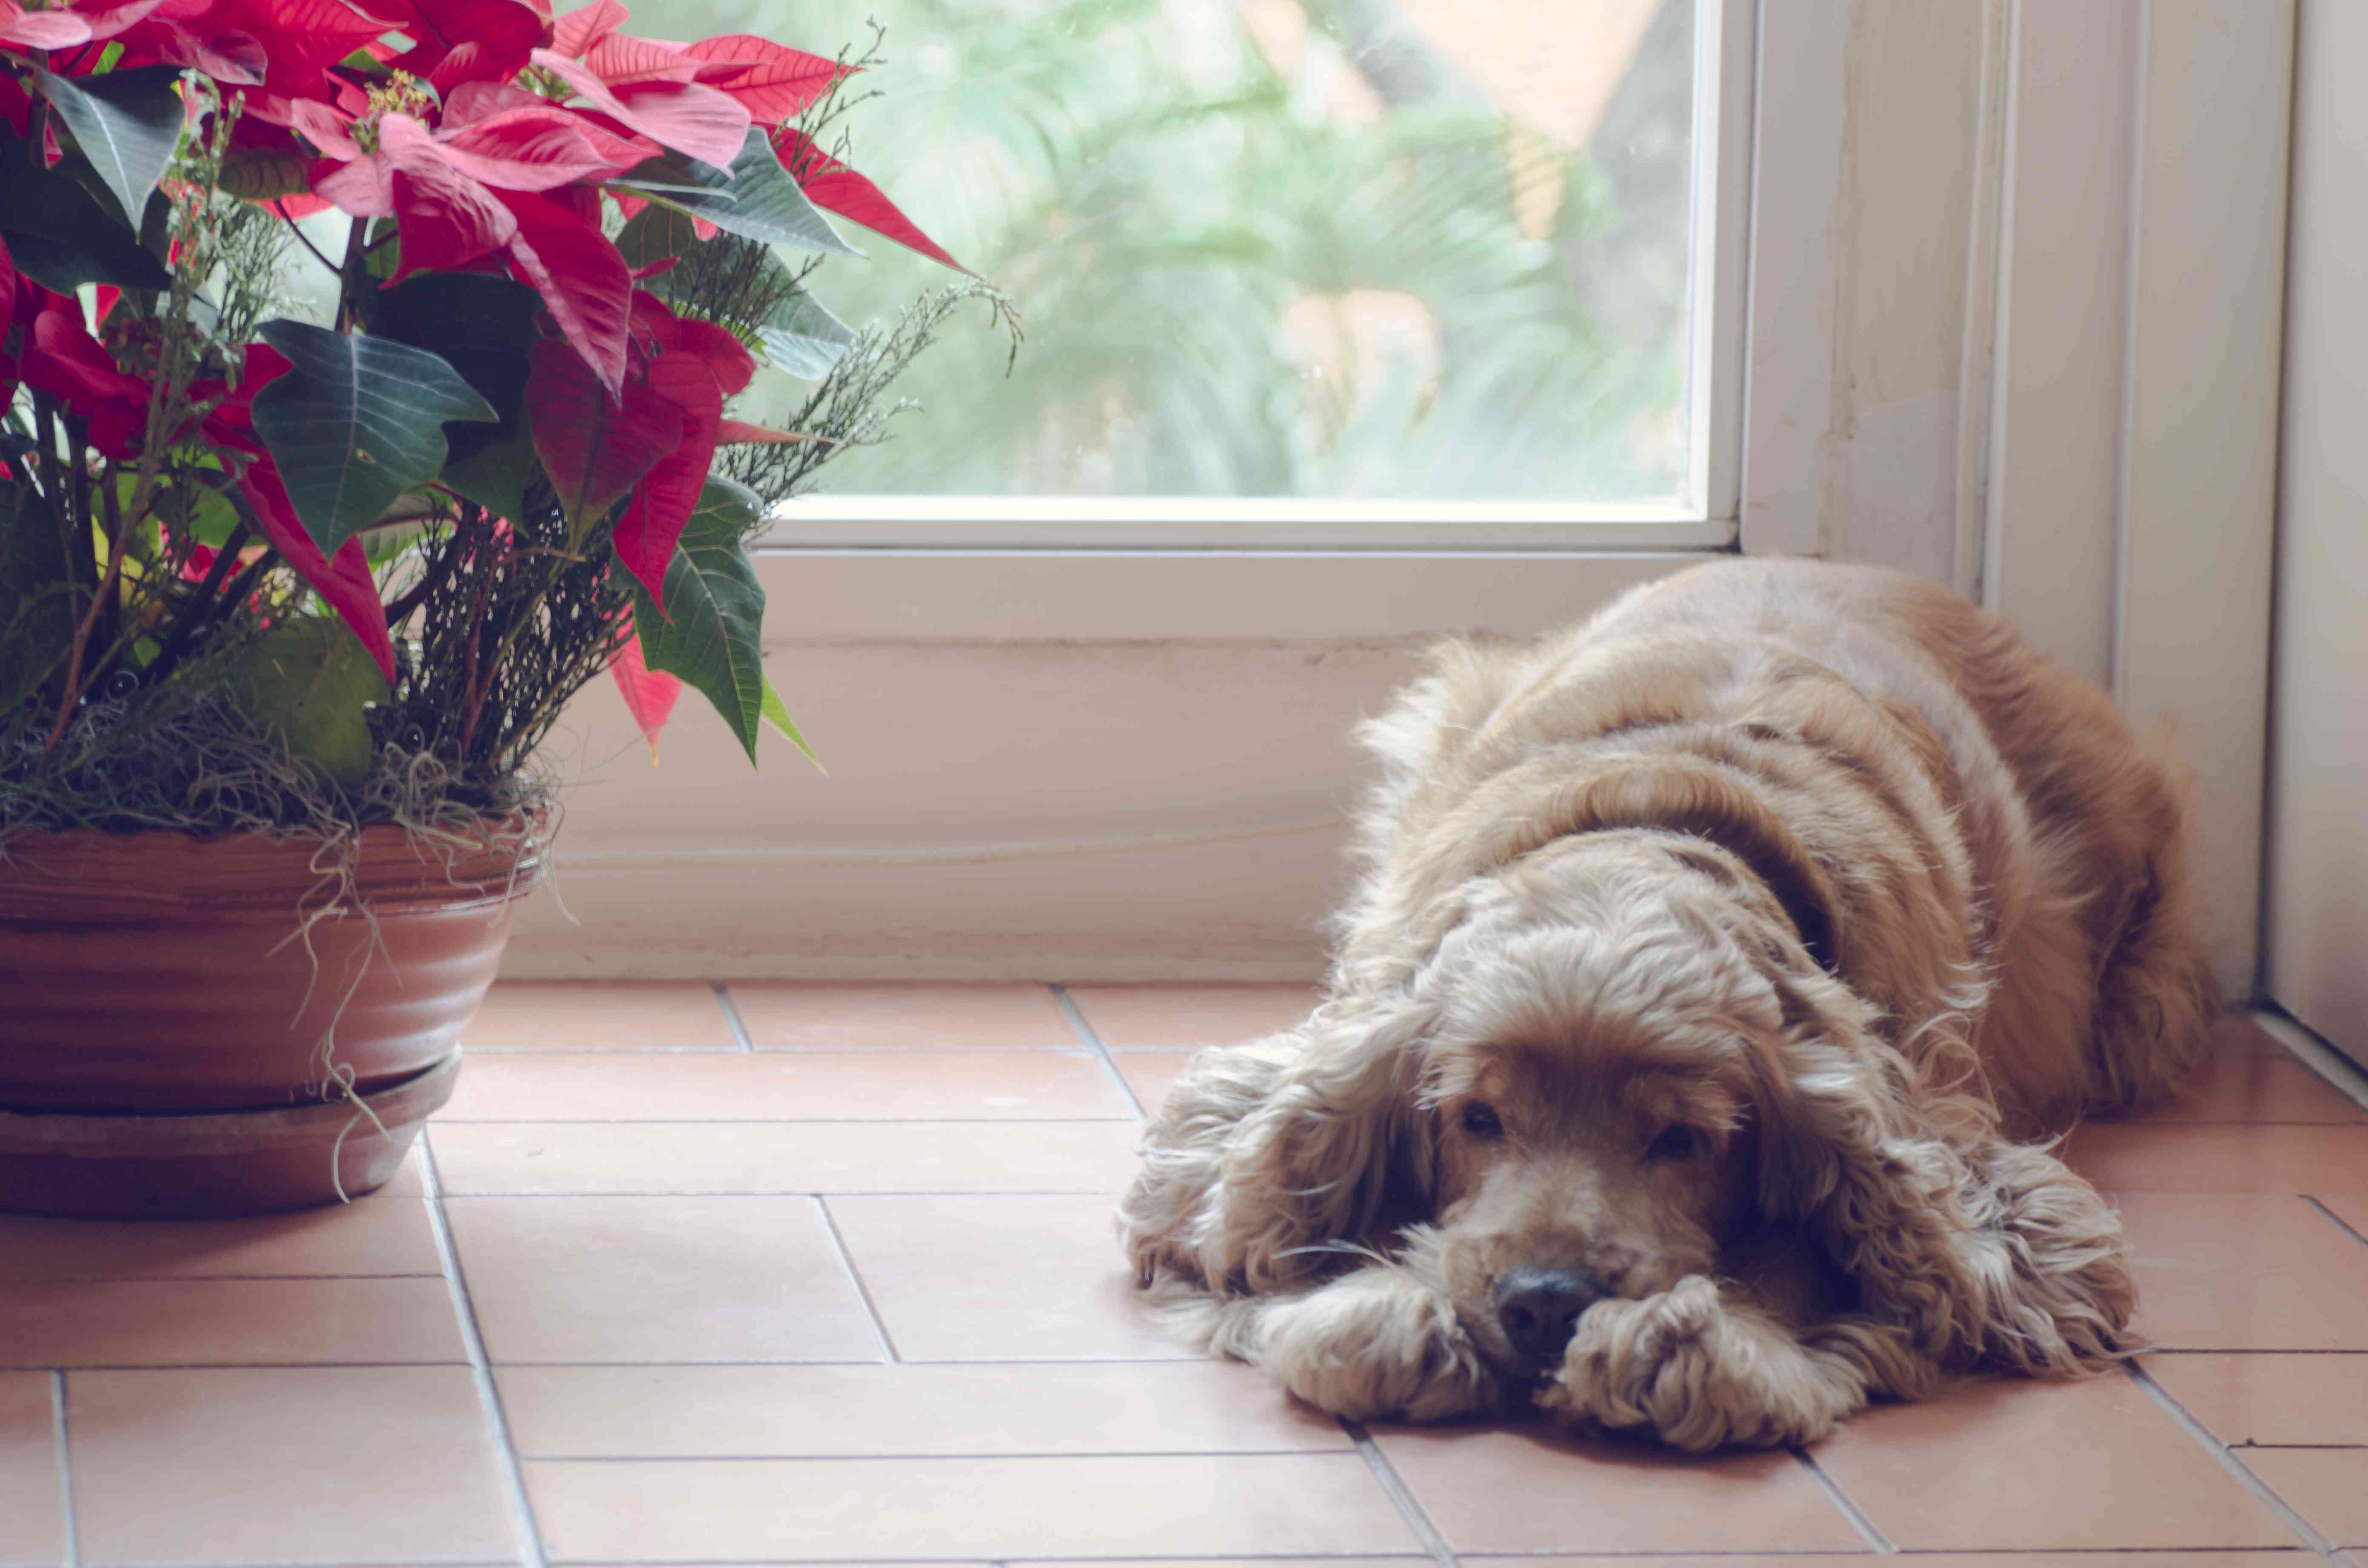 Old dog lying down resting next to a window